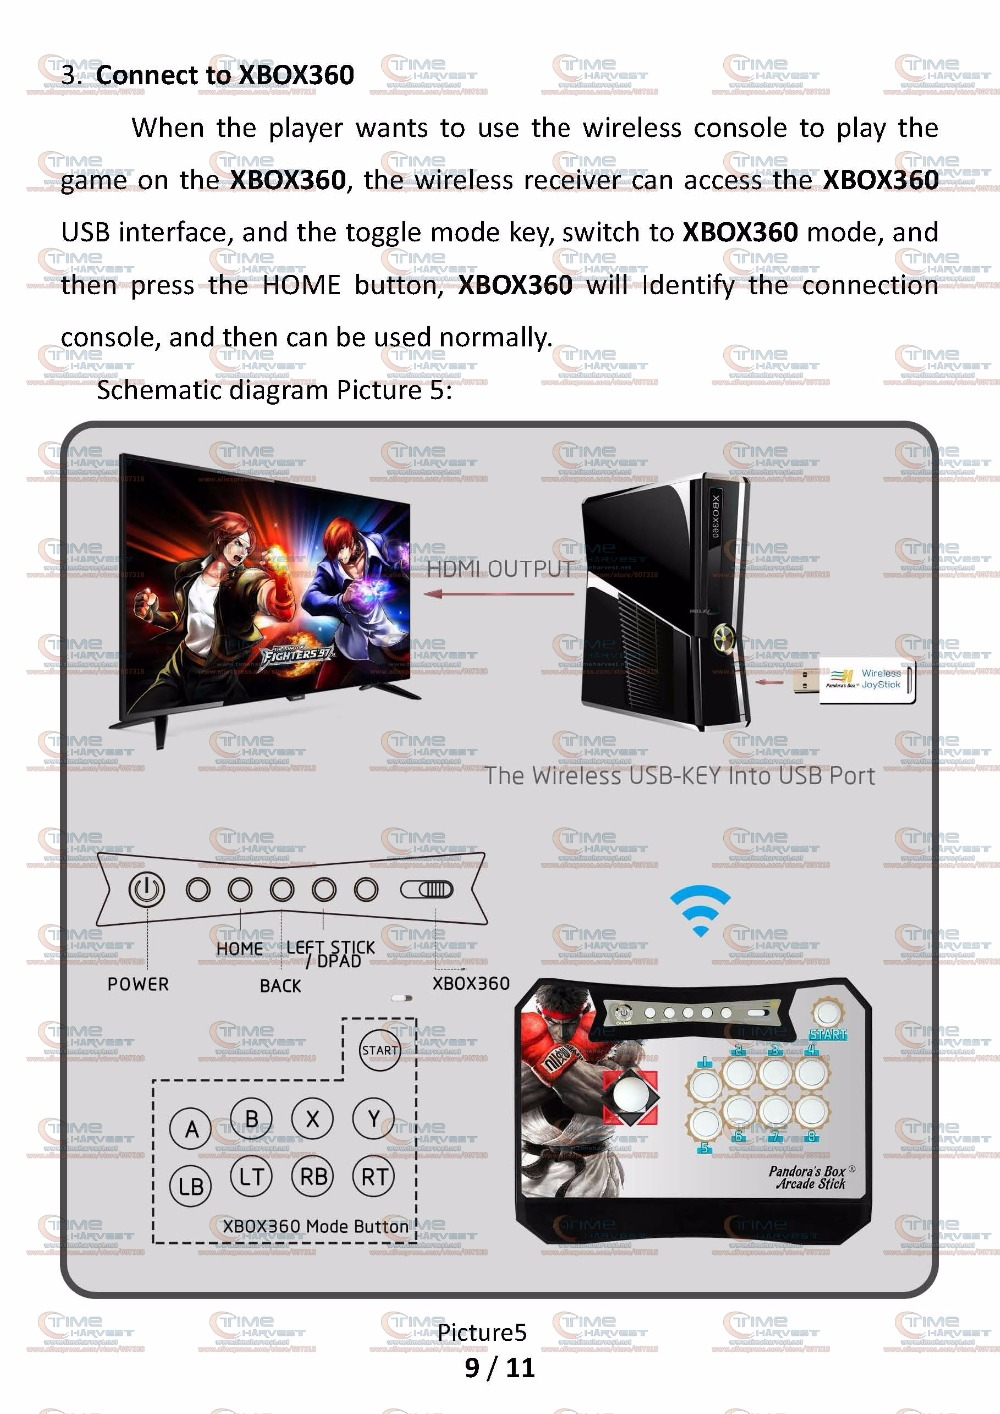 20170525-pandora's box wireless joystick user manual__09